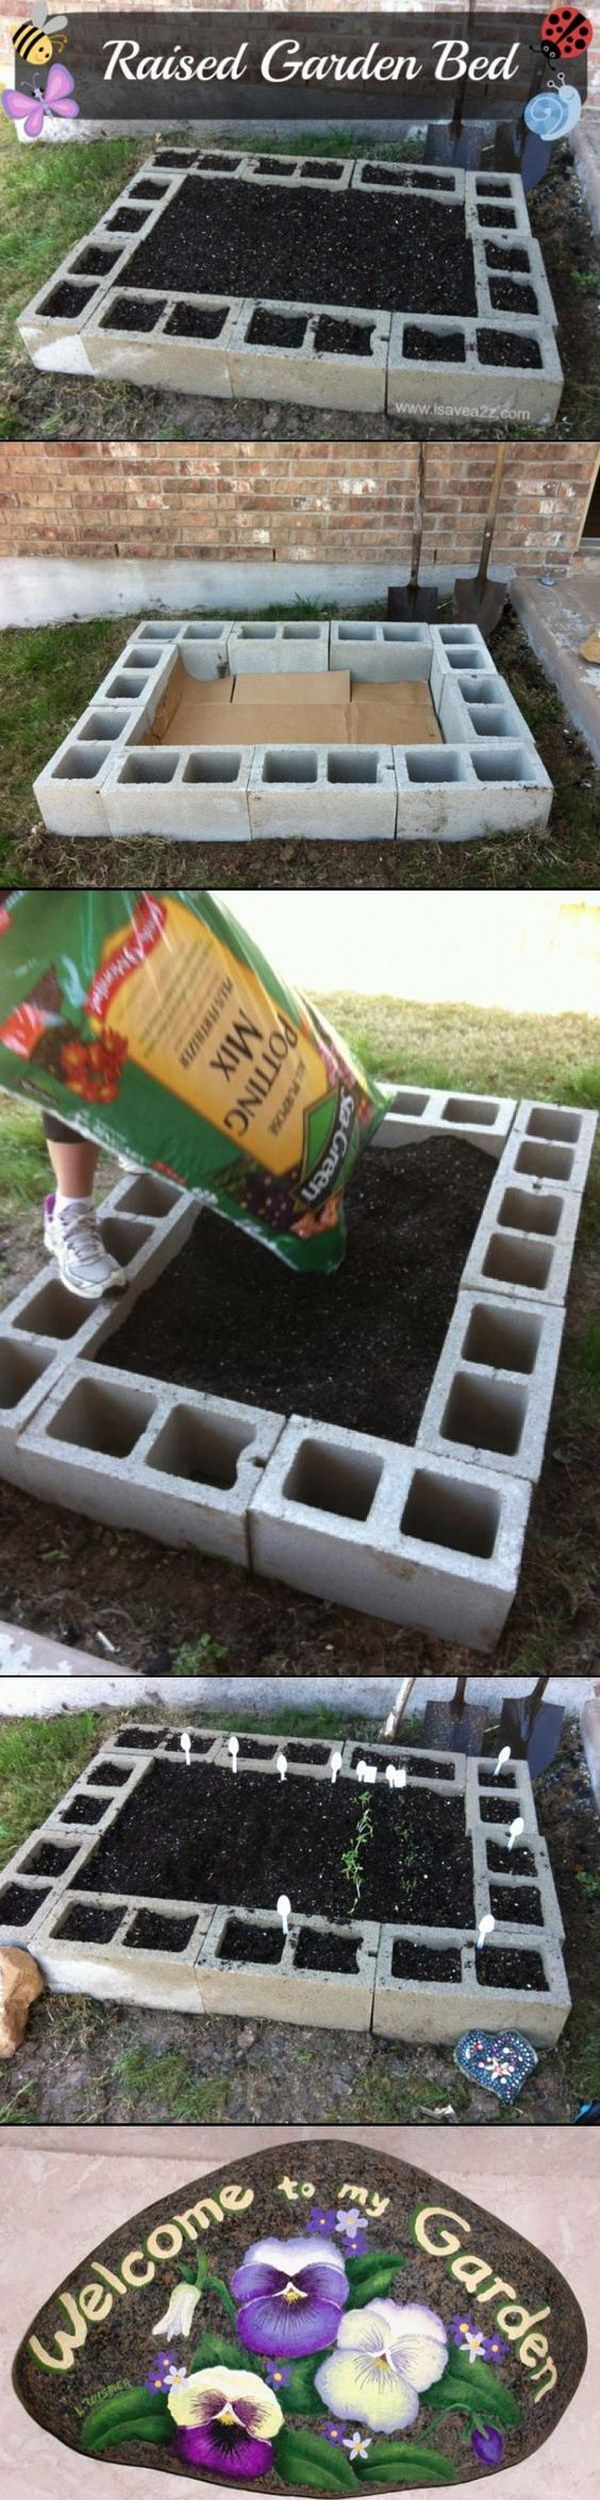 Raised Bed Garden Made Out Of Cinder Blocks (26 Great Ideas That Every Gardening Lover Should Know – Foliver blog)